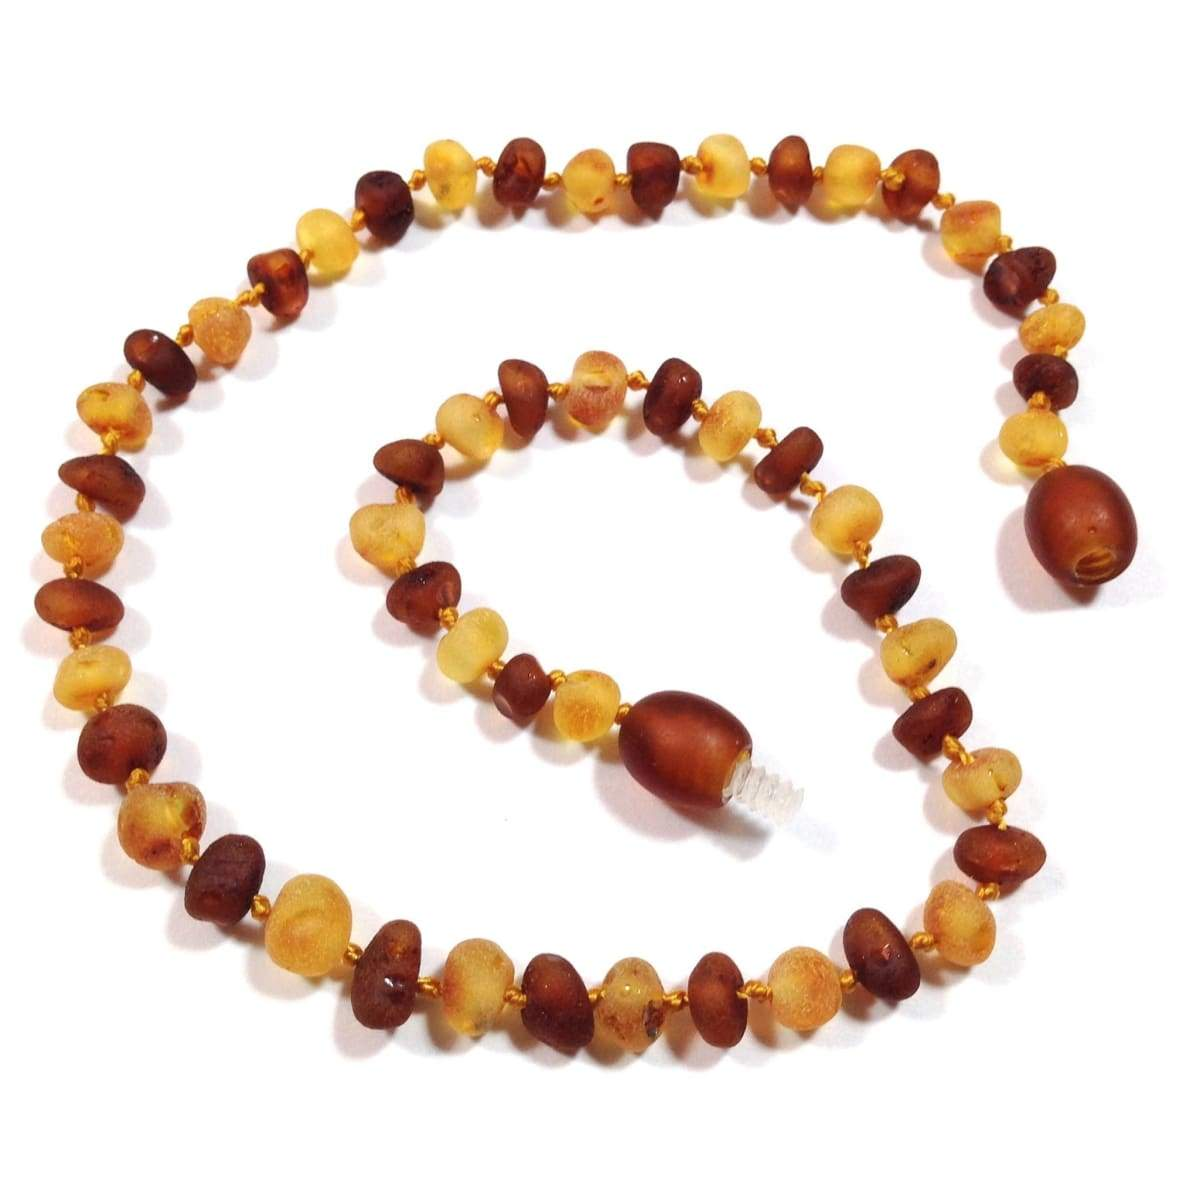 Baltic Amber Nutmeg & Lemondrop - 12 Necklace - Twist Clasp - Baltic Amber Jewelry